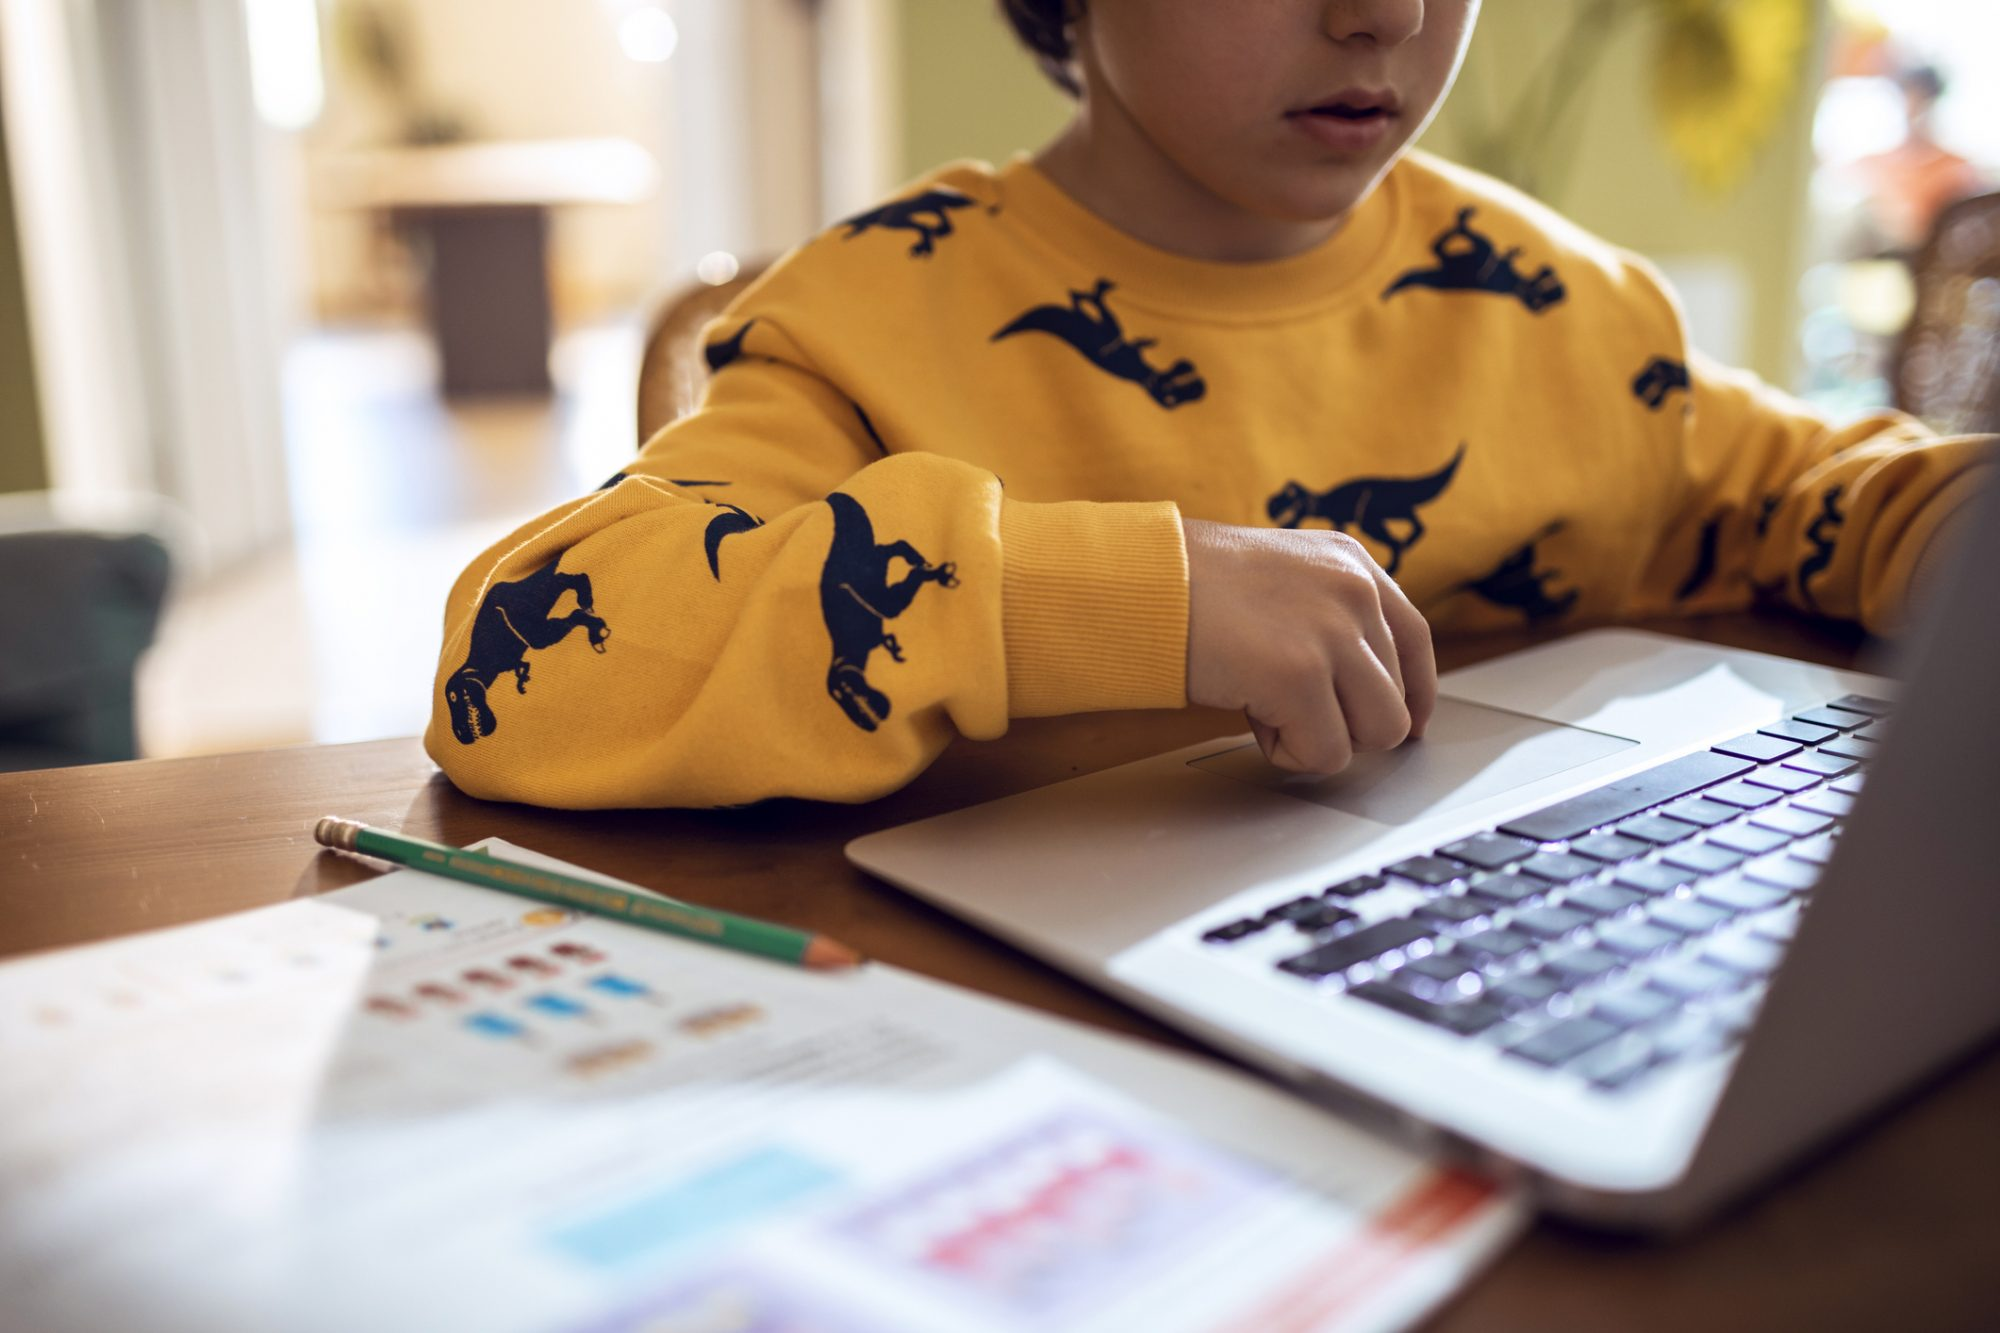 An image of a child doing online learning.